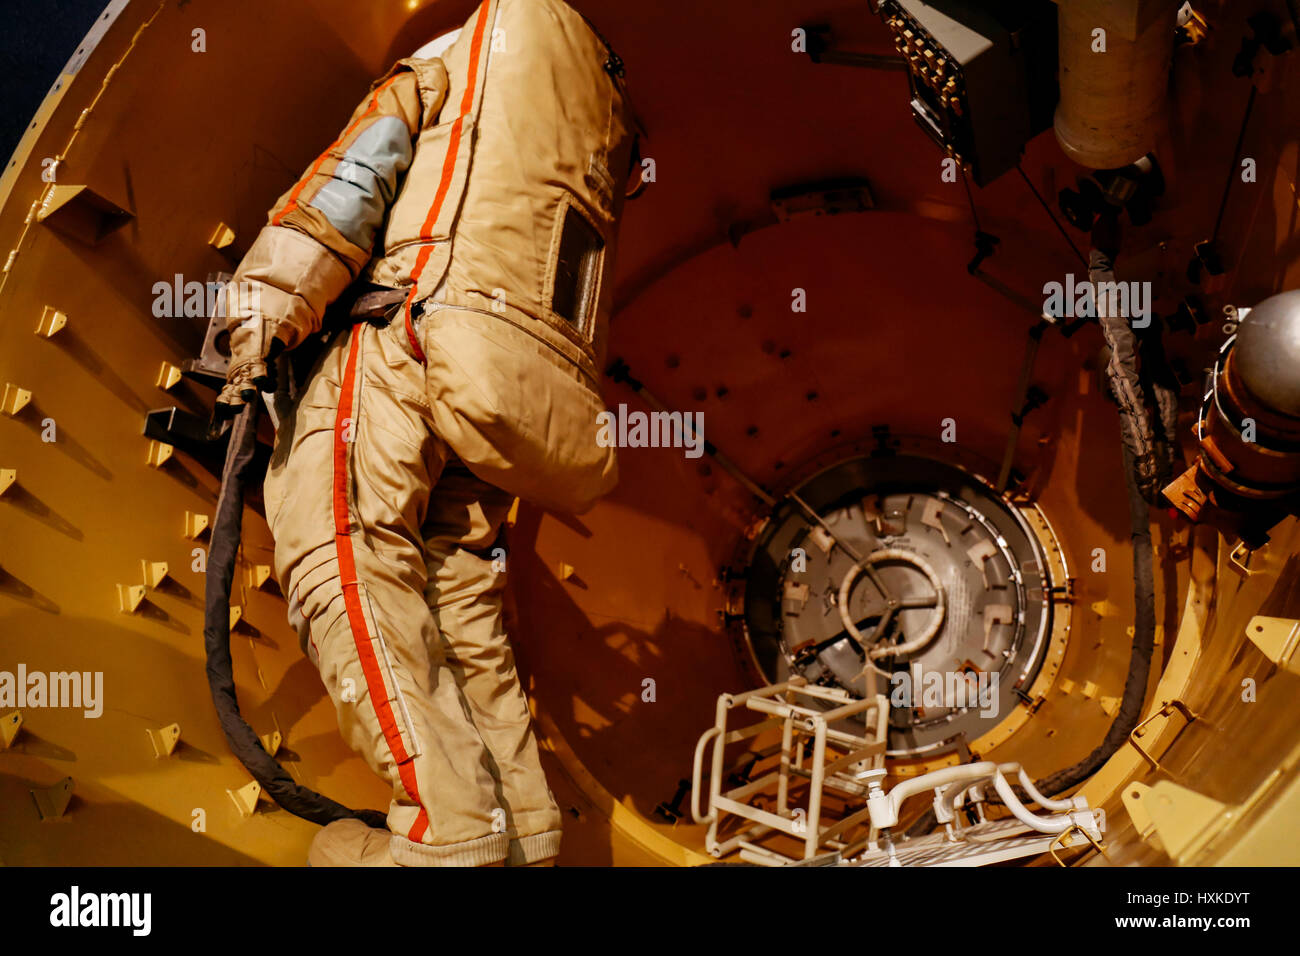 Russian/USSR astronaut in a spacesuit inside a space station on exhibit at Moscow Space Museum - Stock Image